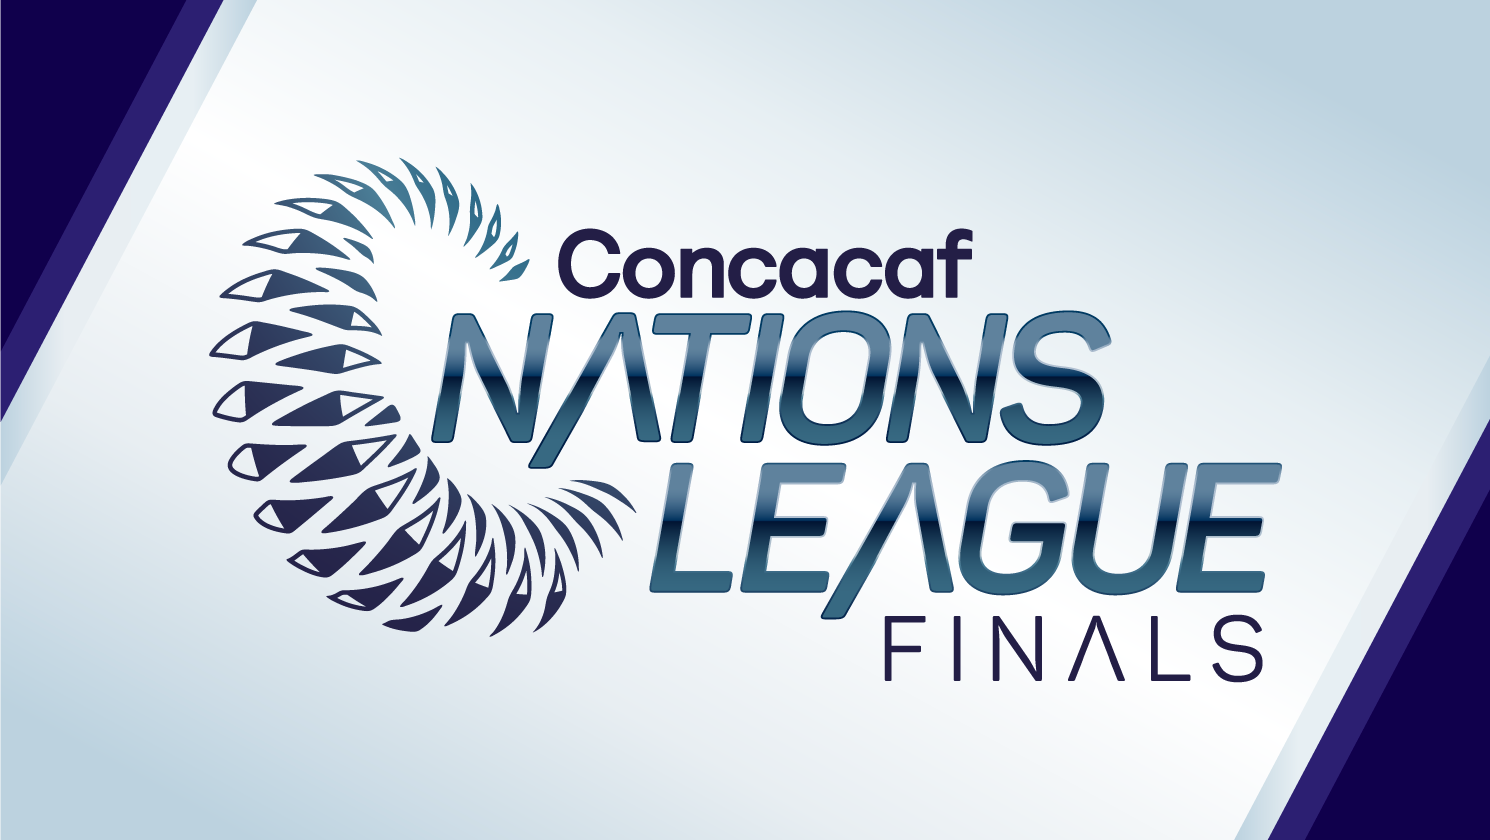 Concacaf Statement regarding the suspension of the Concacaf Nations League Finals, Road to Gold Cup Qualifiers and Flow Caribbean Club Championship